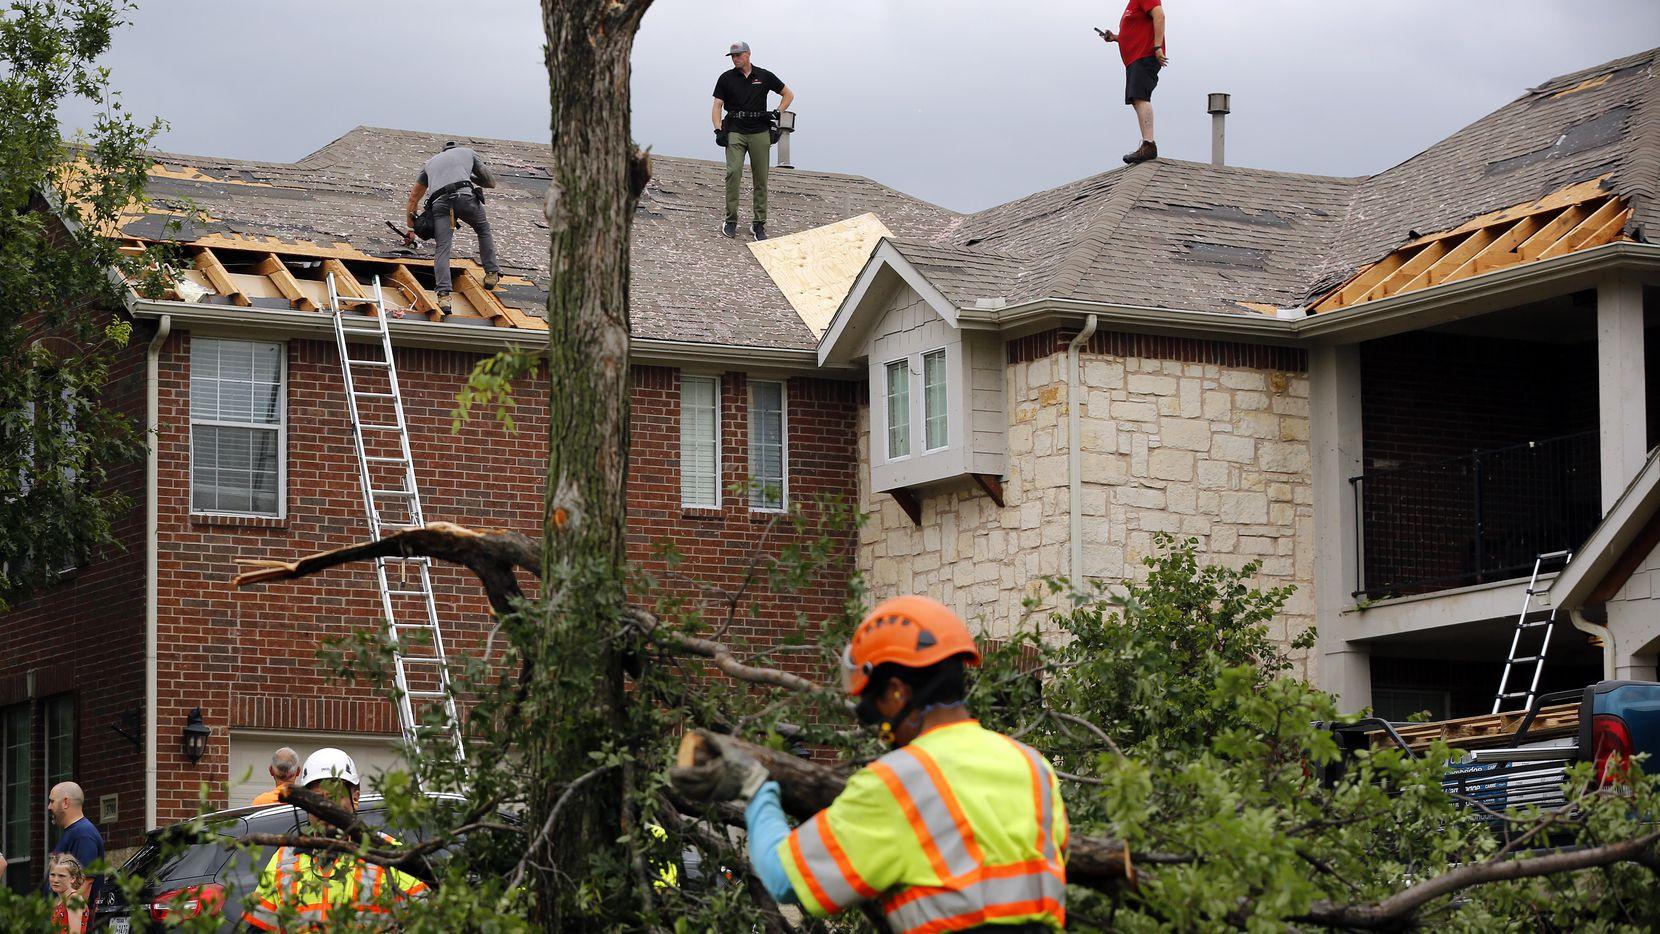 Oliver Drive in North Fort Worth was a hub of activity as crews covered damaged rooftops and disposed of splintered trees May 29.